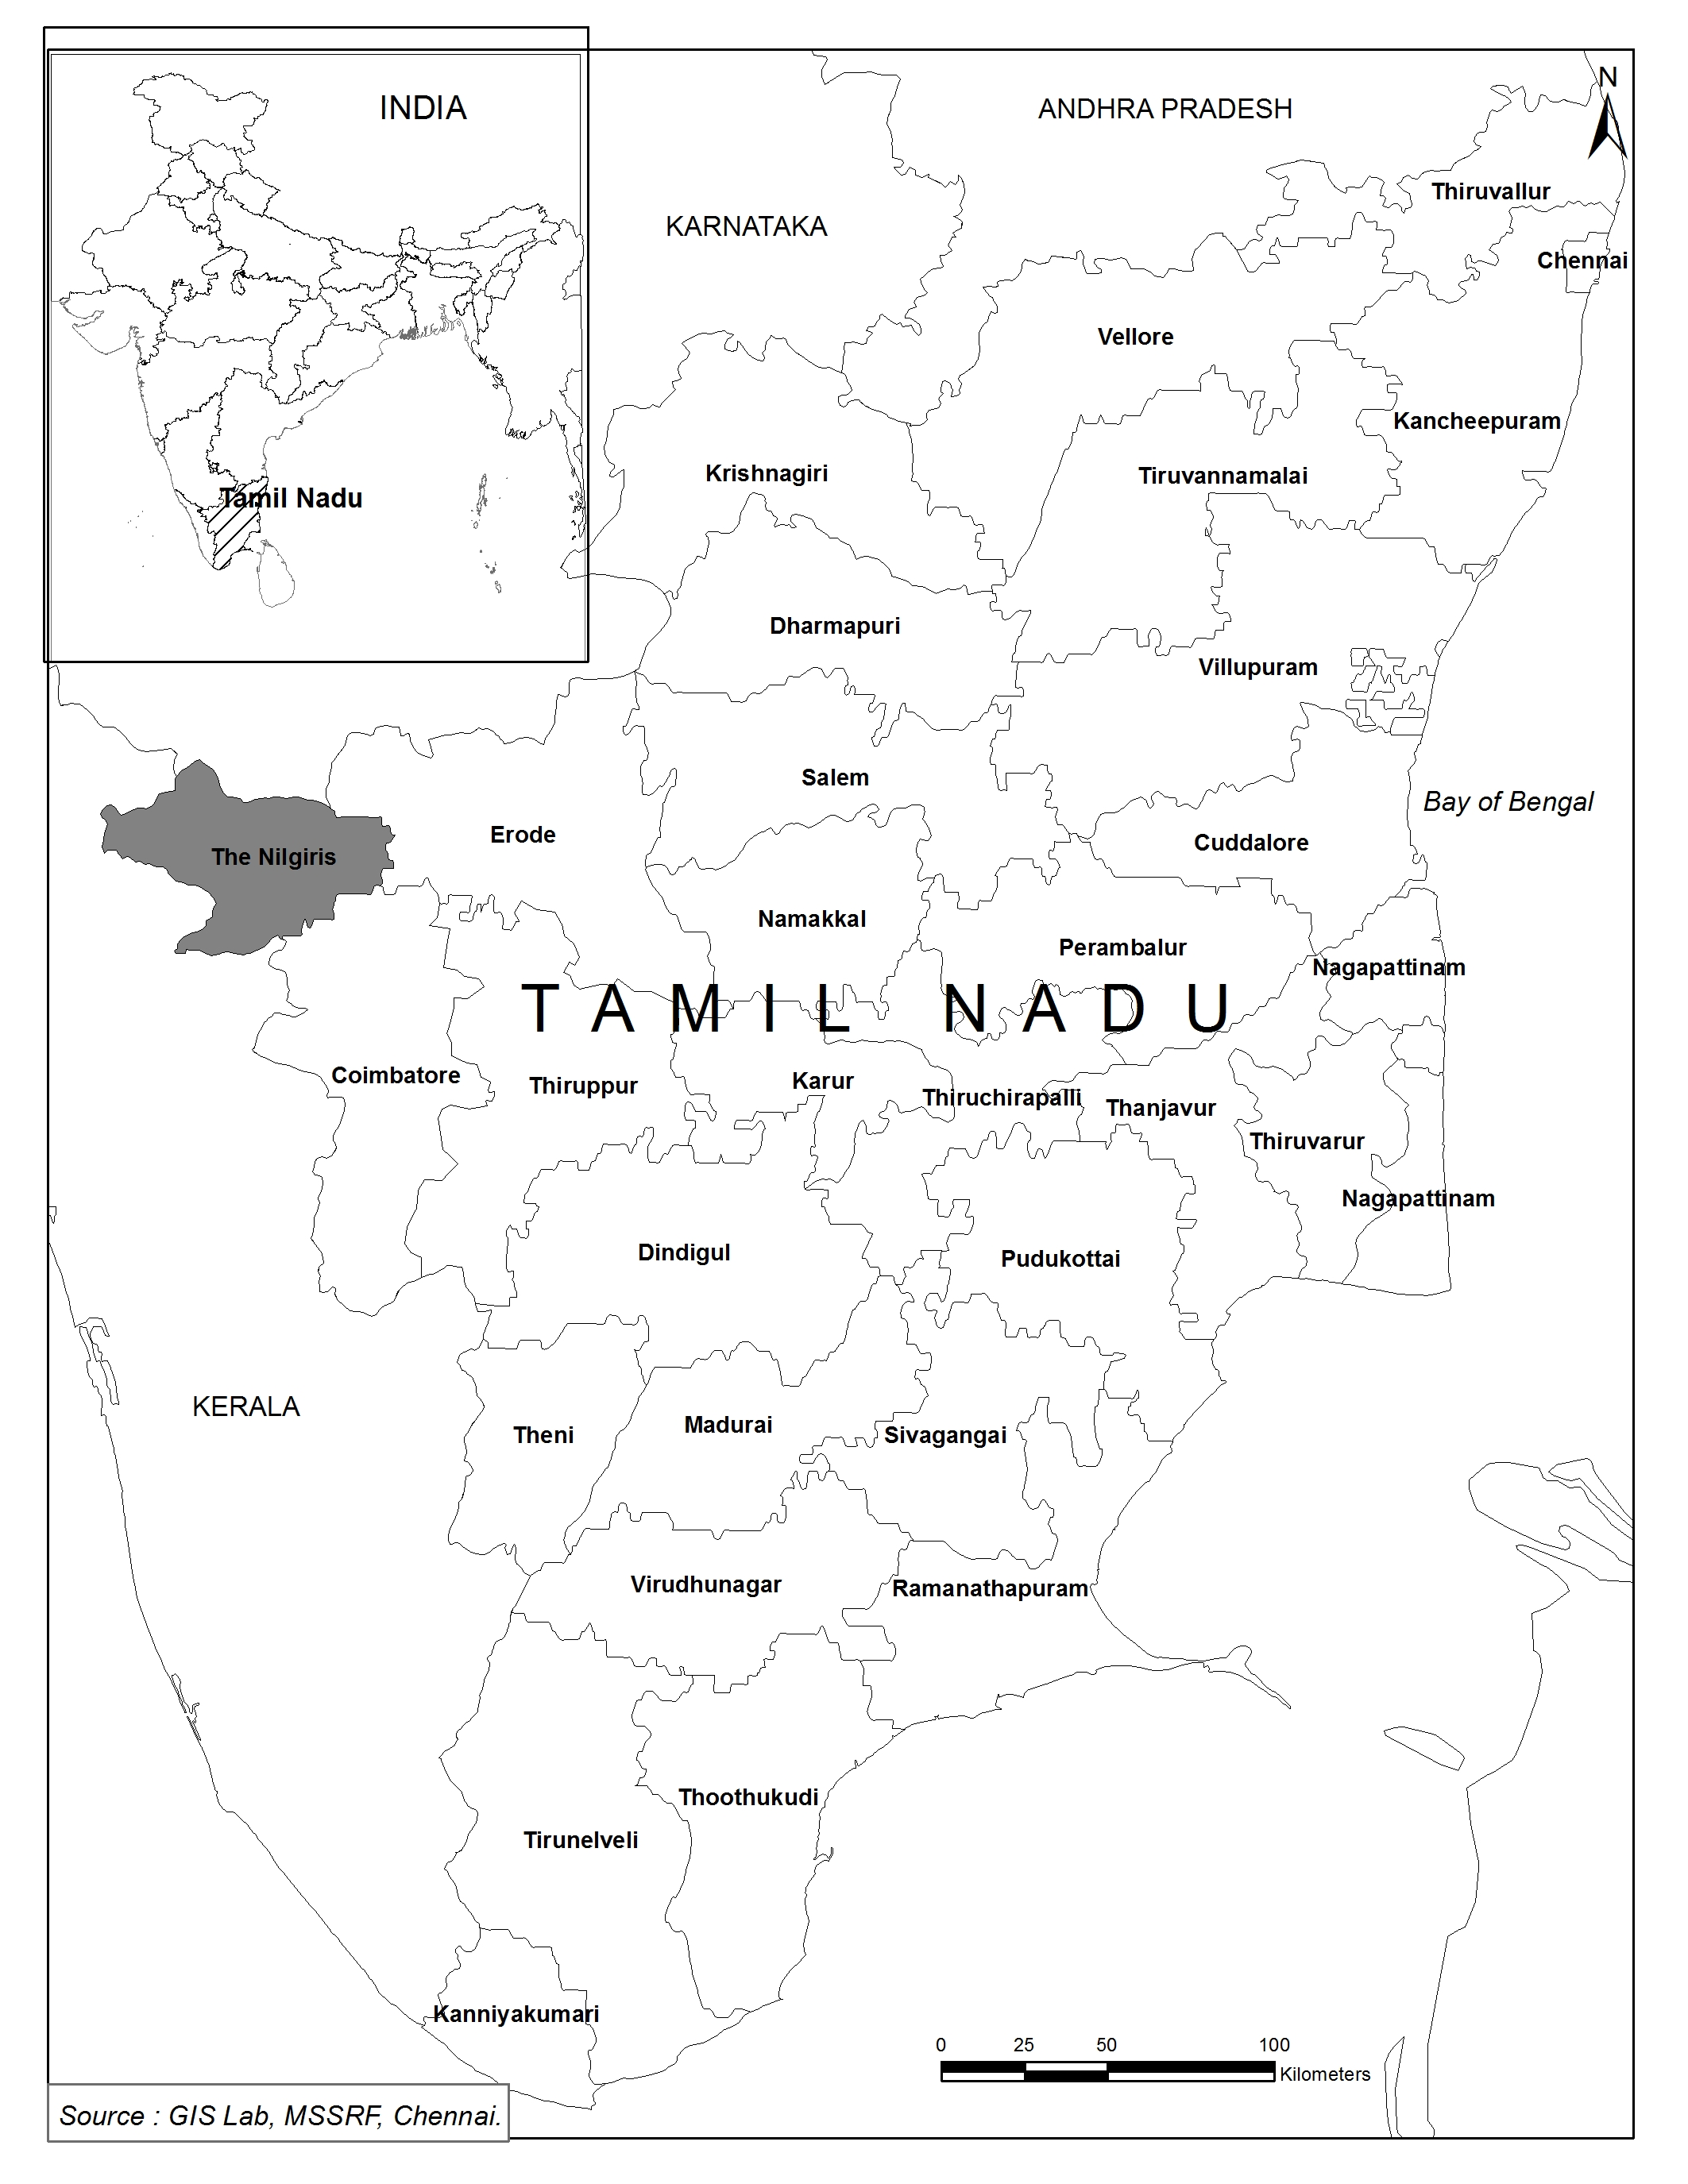 Pandalur-Devala, located within the Niligiris mountain range. Credit: MSSRF